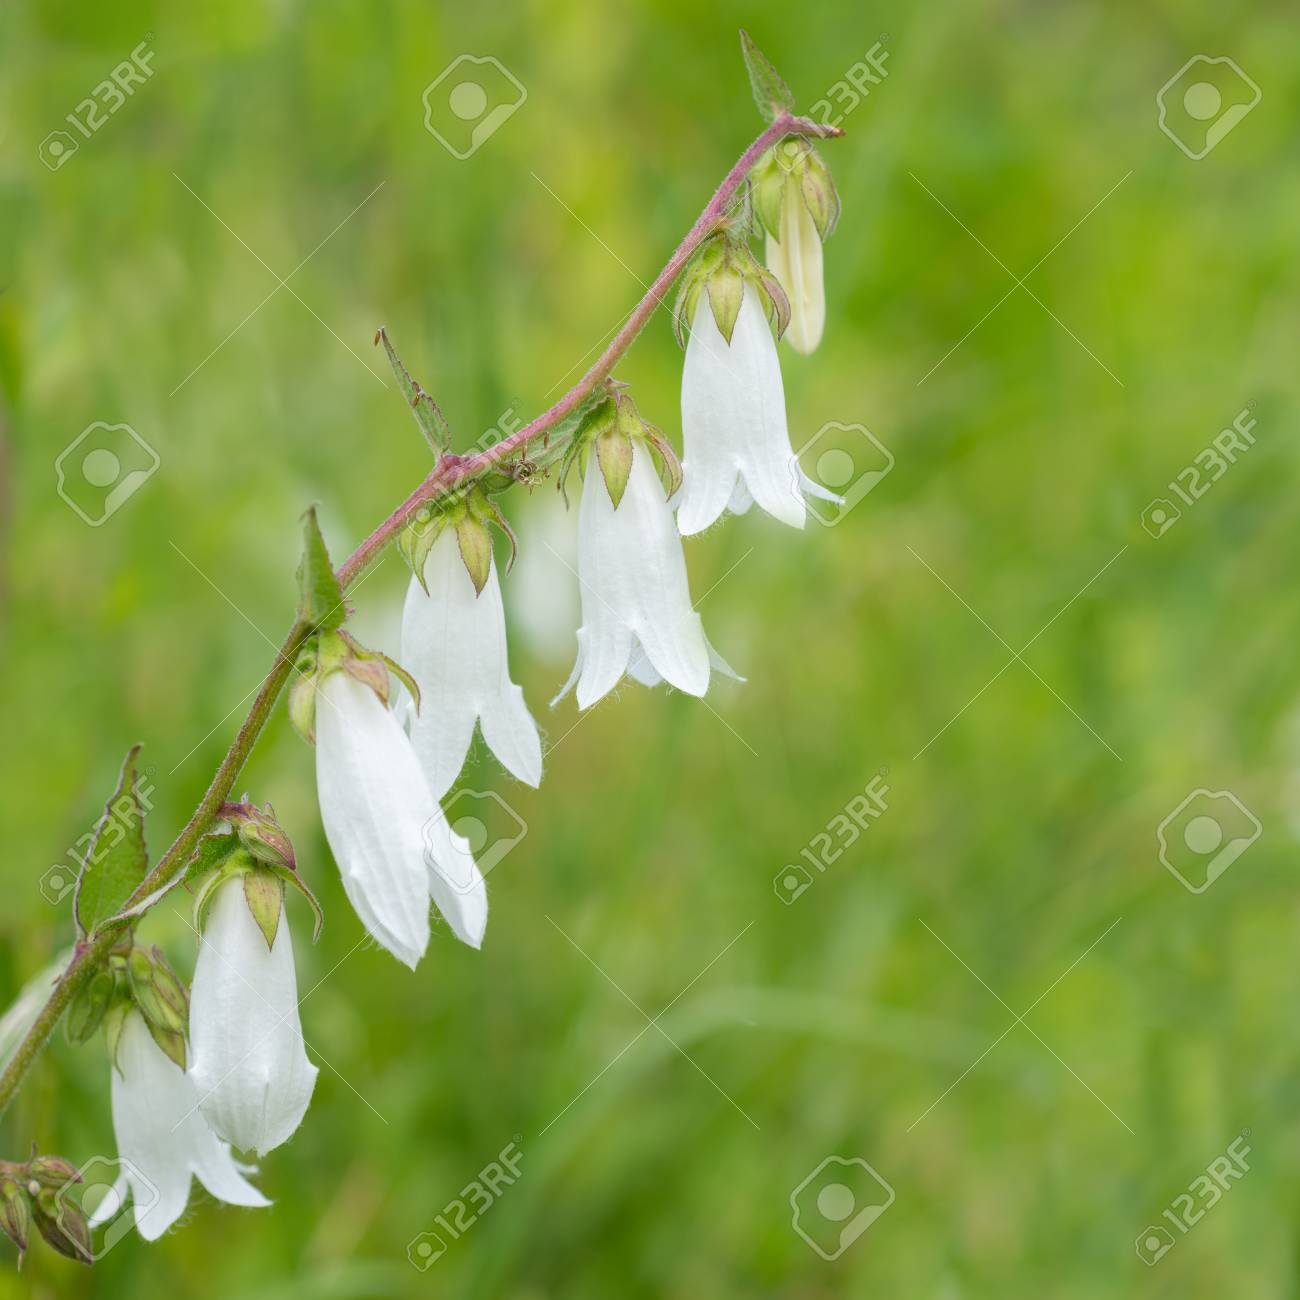 Flowers White Bells Stock Photo, Picture And Royalty Free Image ...